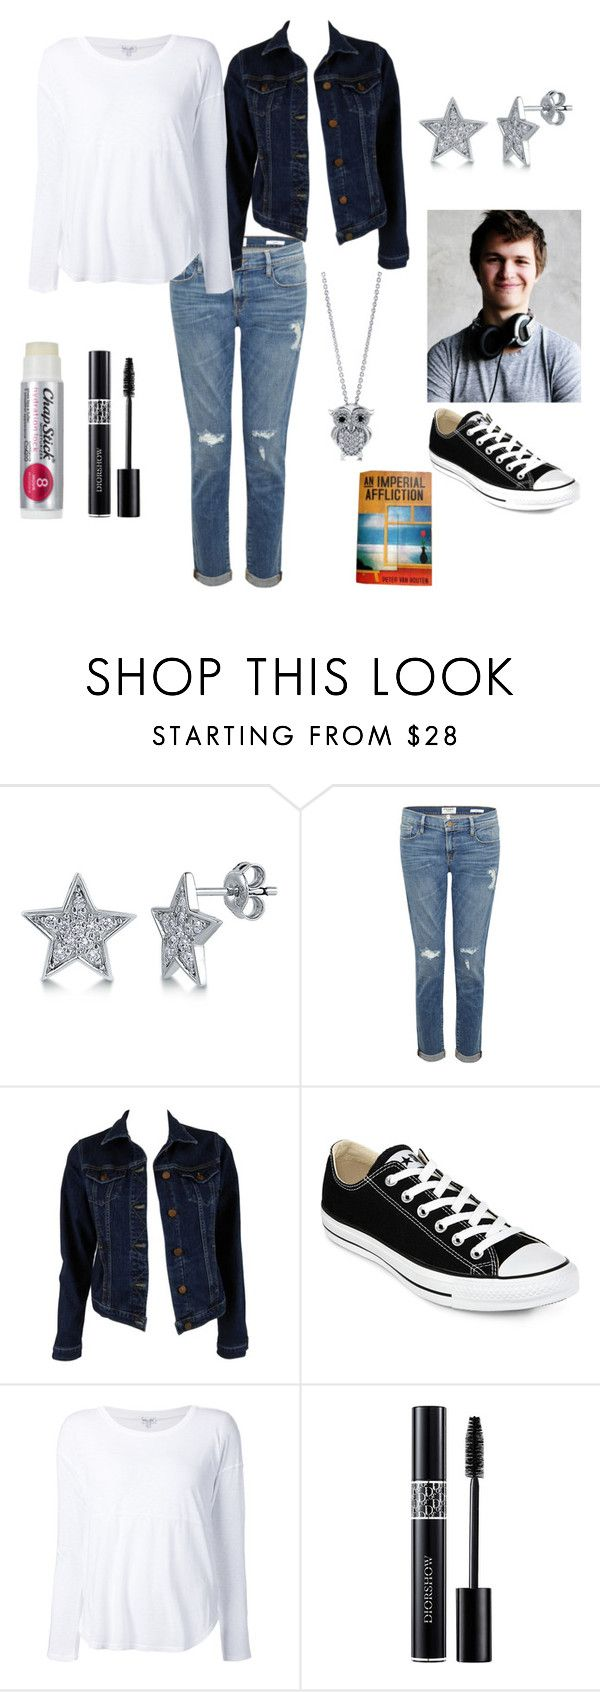 """Hazel Grace Lancaster Outfit"" by acciopotterbook ❤ liked on Polyvore featuring BERRICLE, Frame Denim, MiH Jeans, Converse, Splendid, Chapstick and Christian Dior"